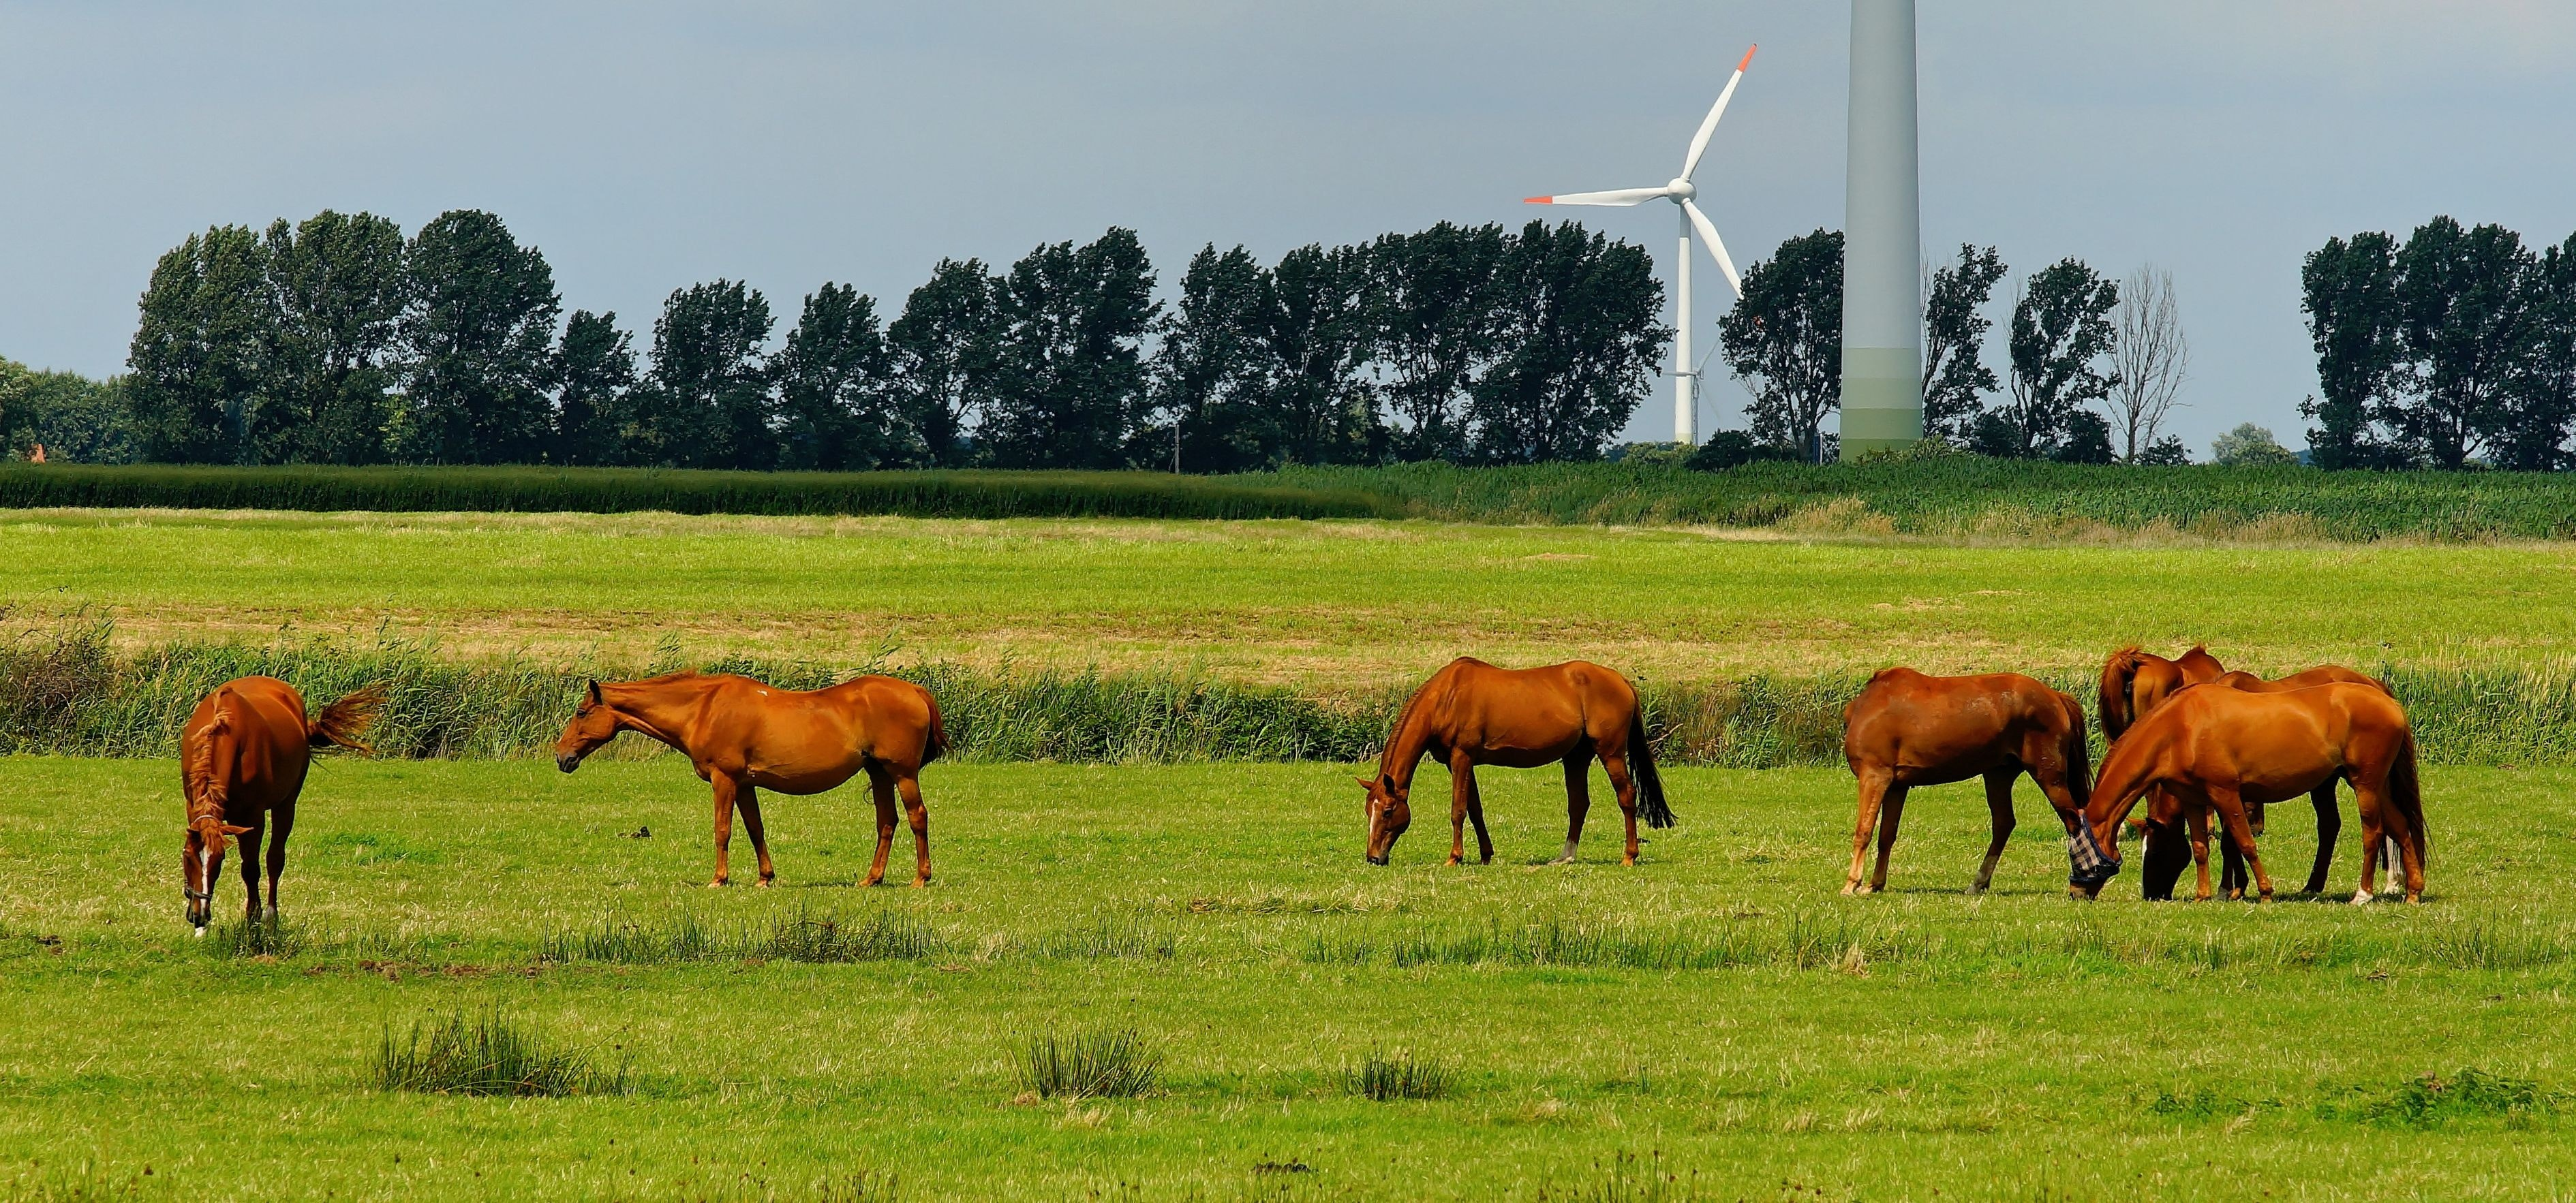 6 Horses on Green Field during Daytime, Animals, Equine, Farm, Field, HQ Photo